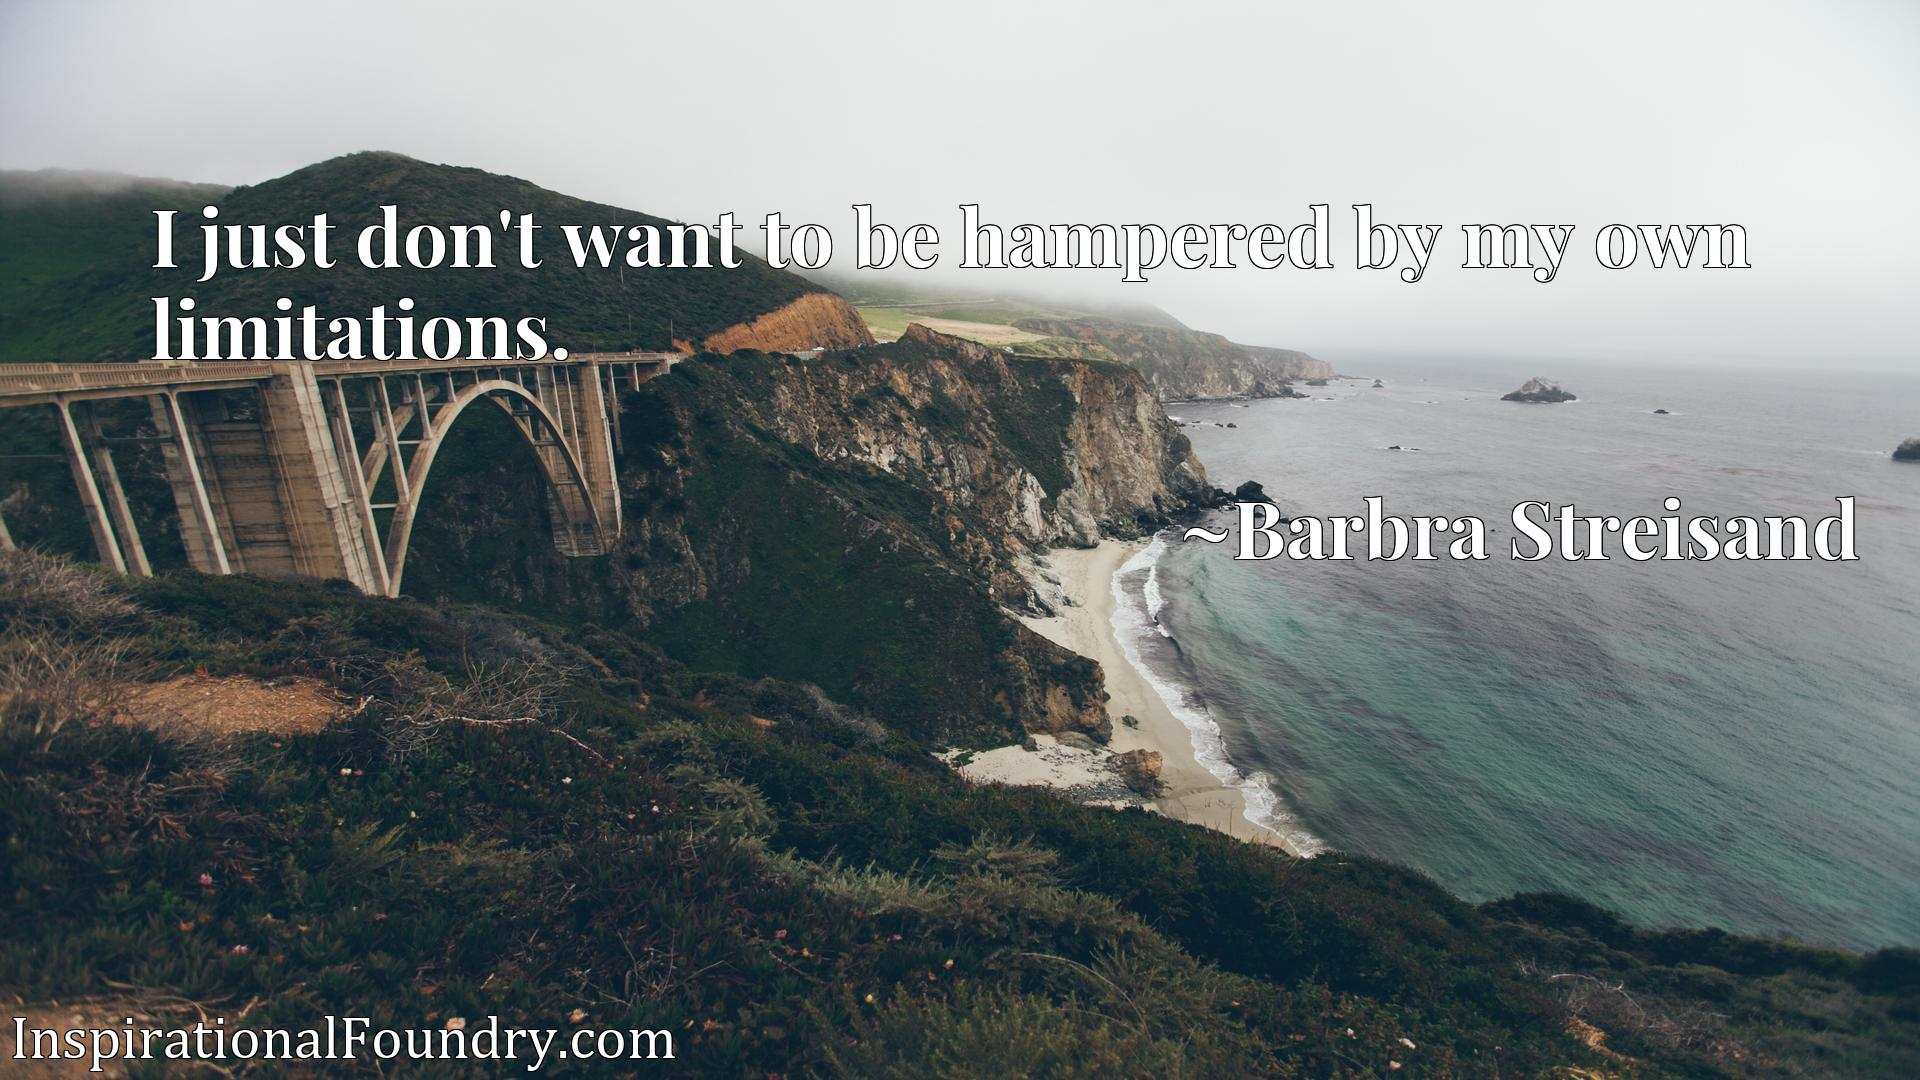 I just don't want to be hampered by my own limitations.